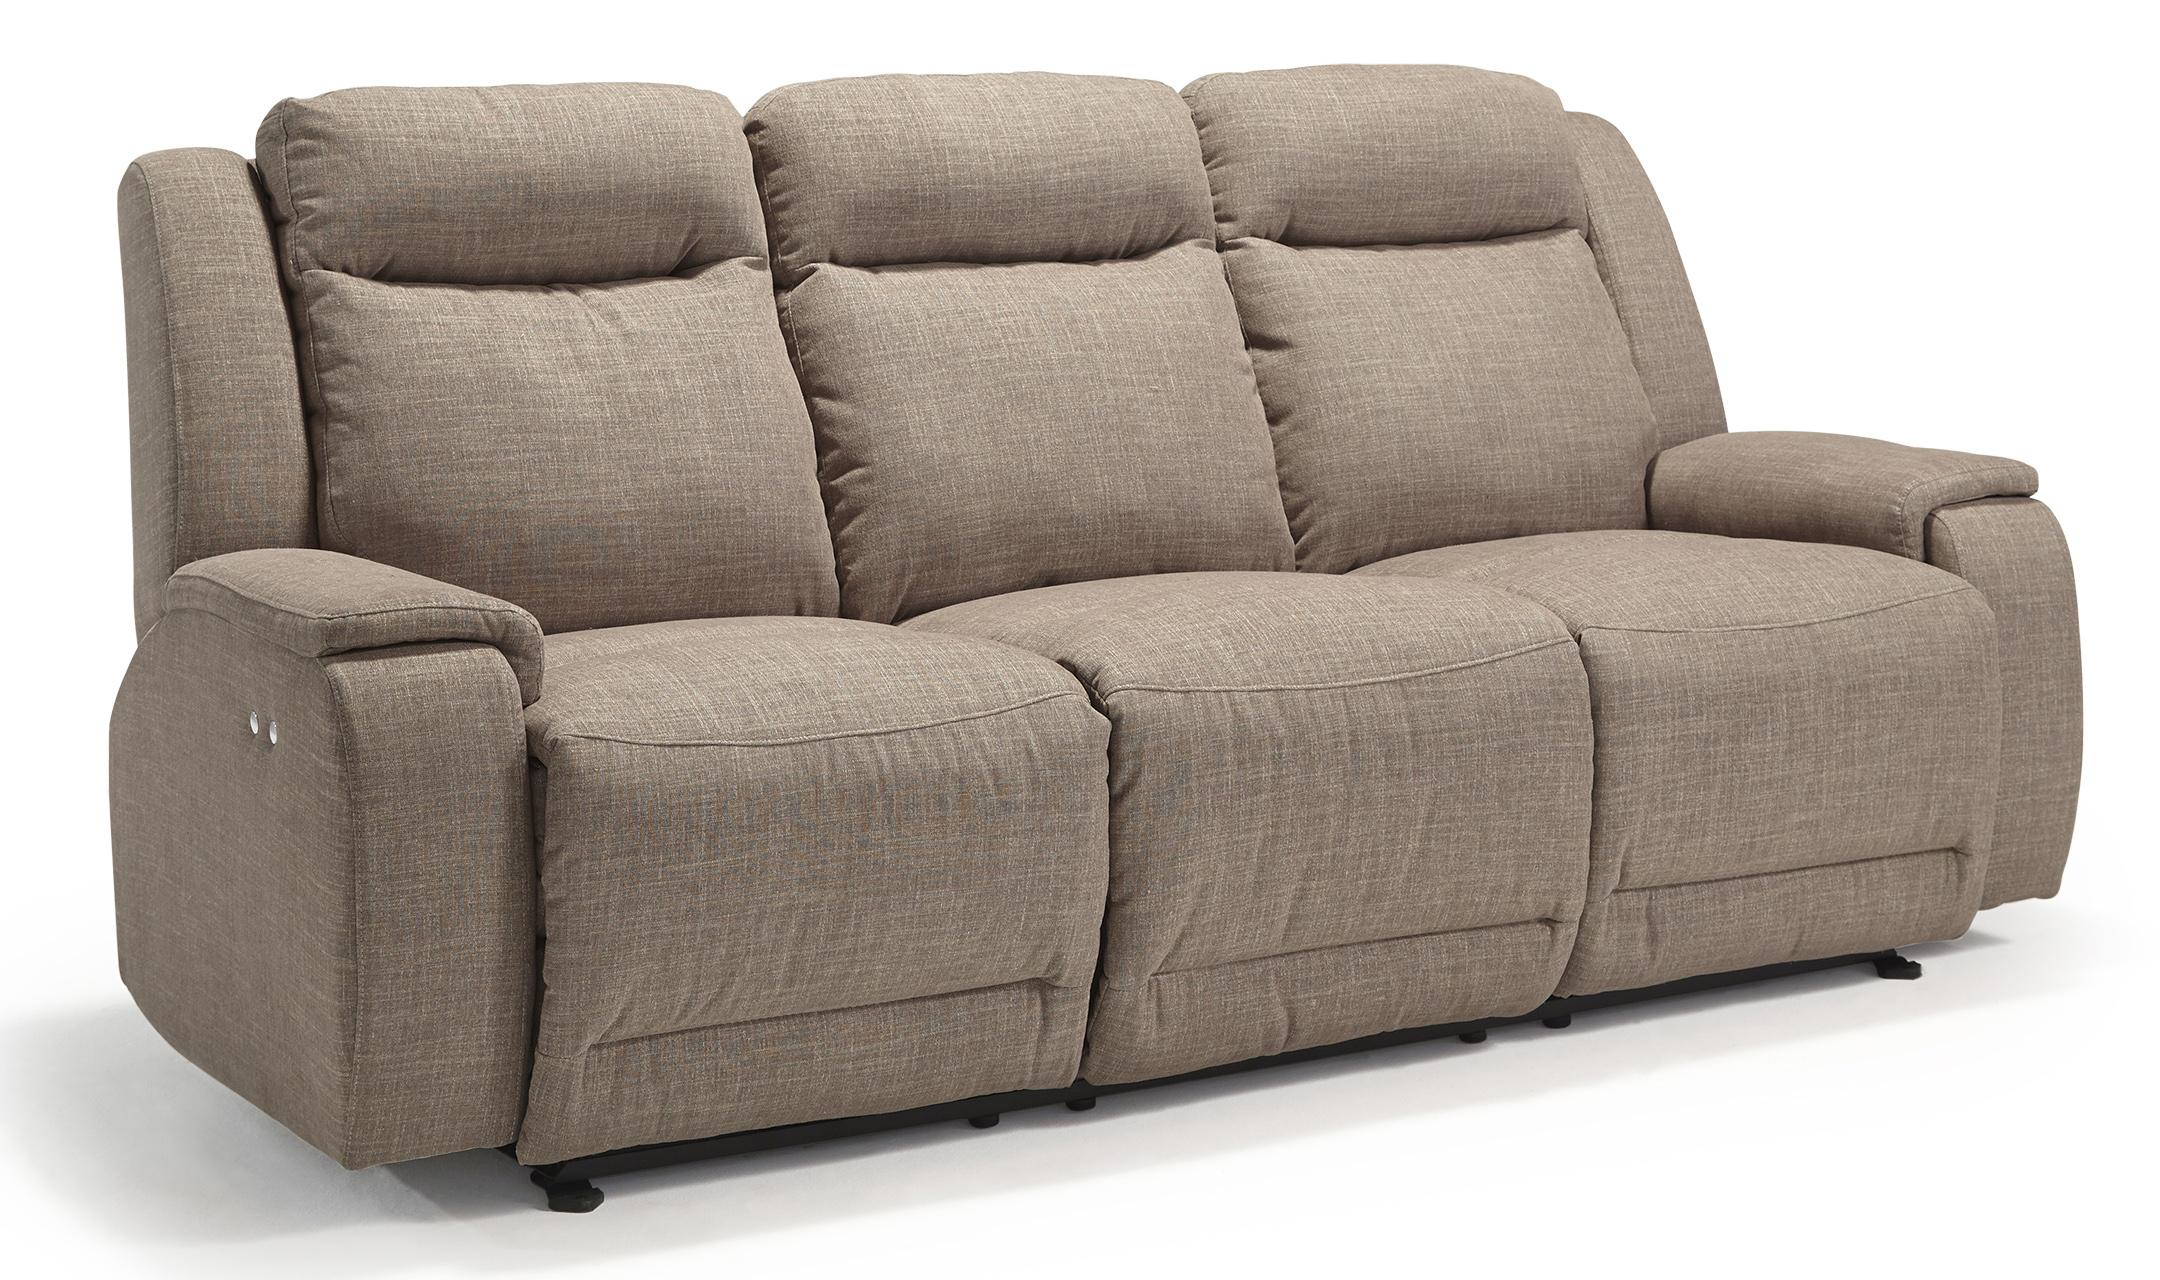 Casual Power Reclining Sofa With Memory Foam Cushions By Best Home Furnishings Wolf And